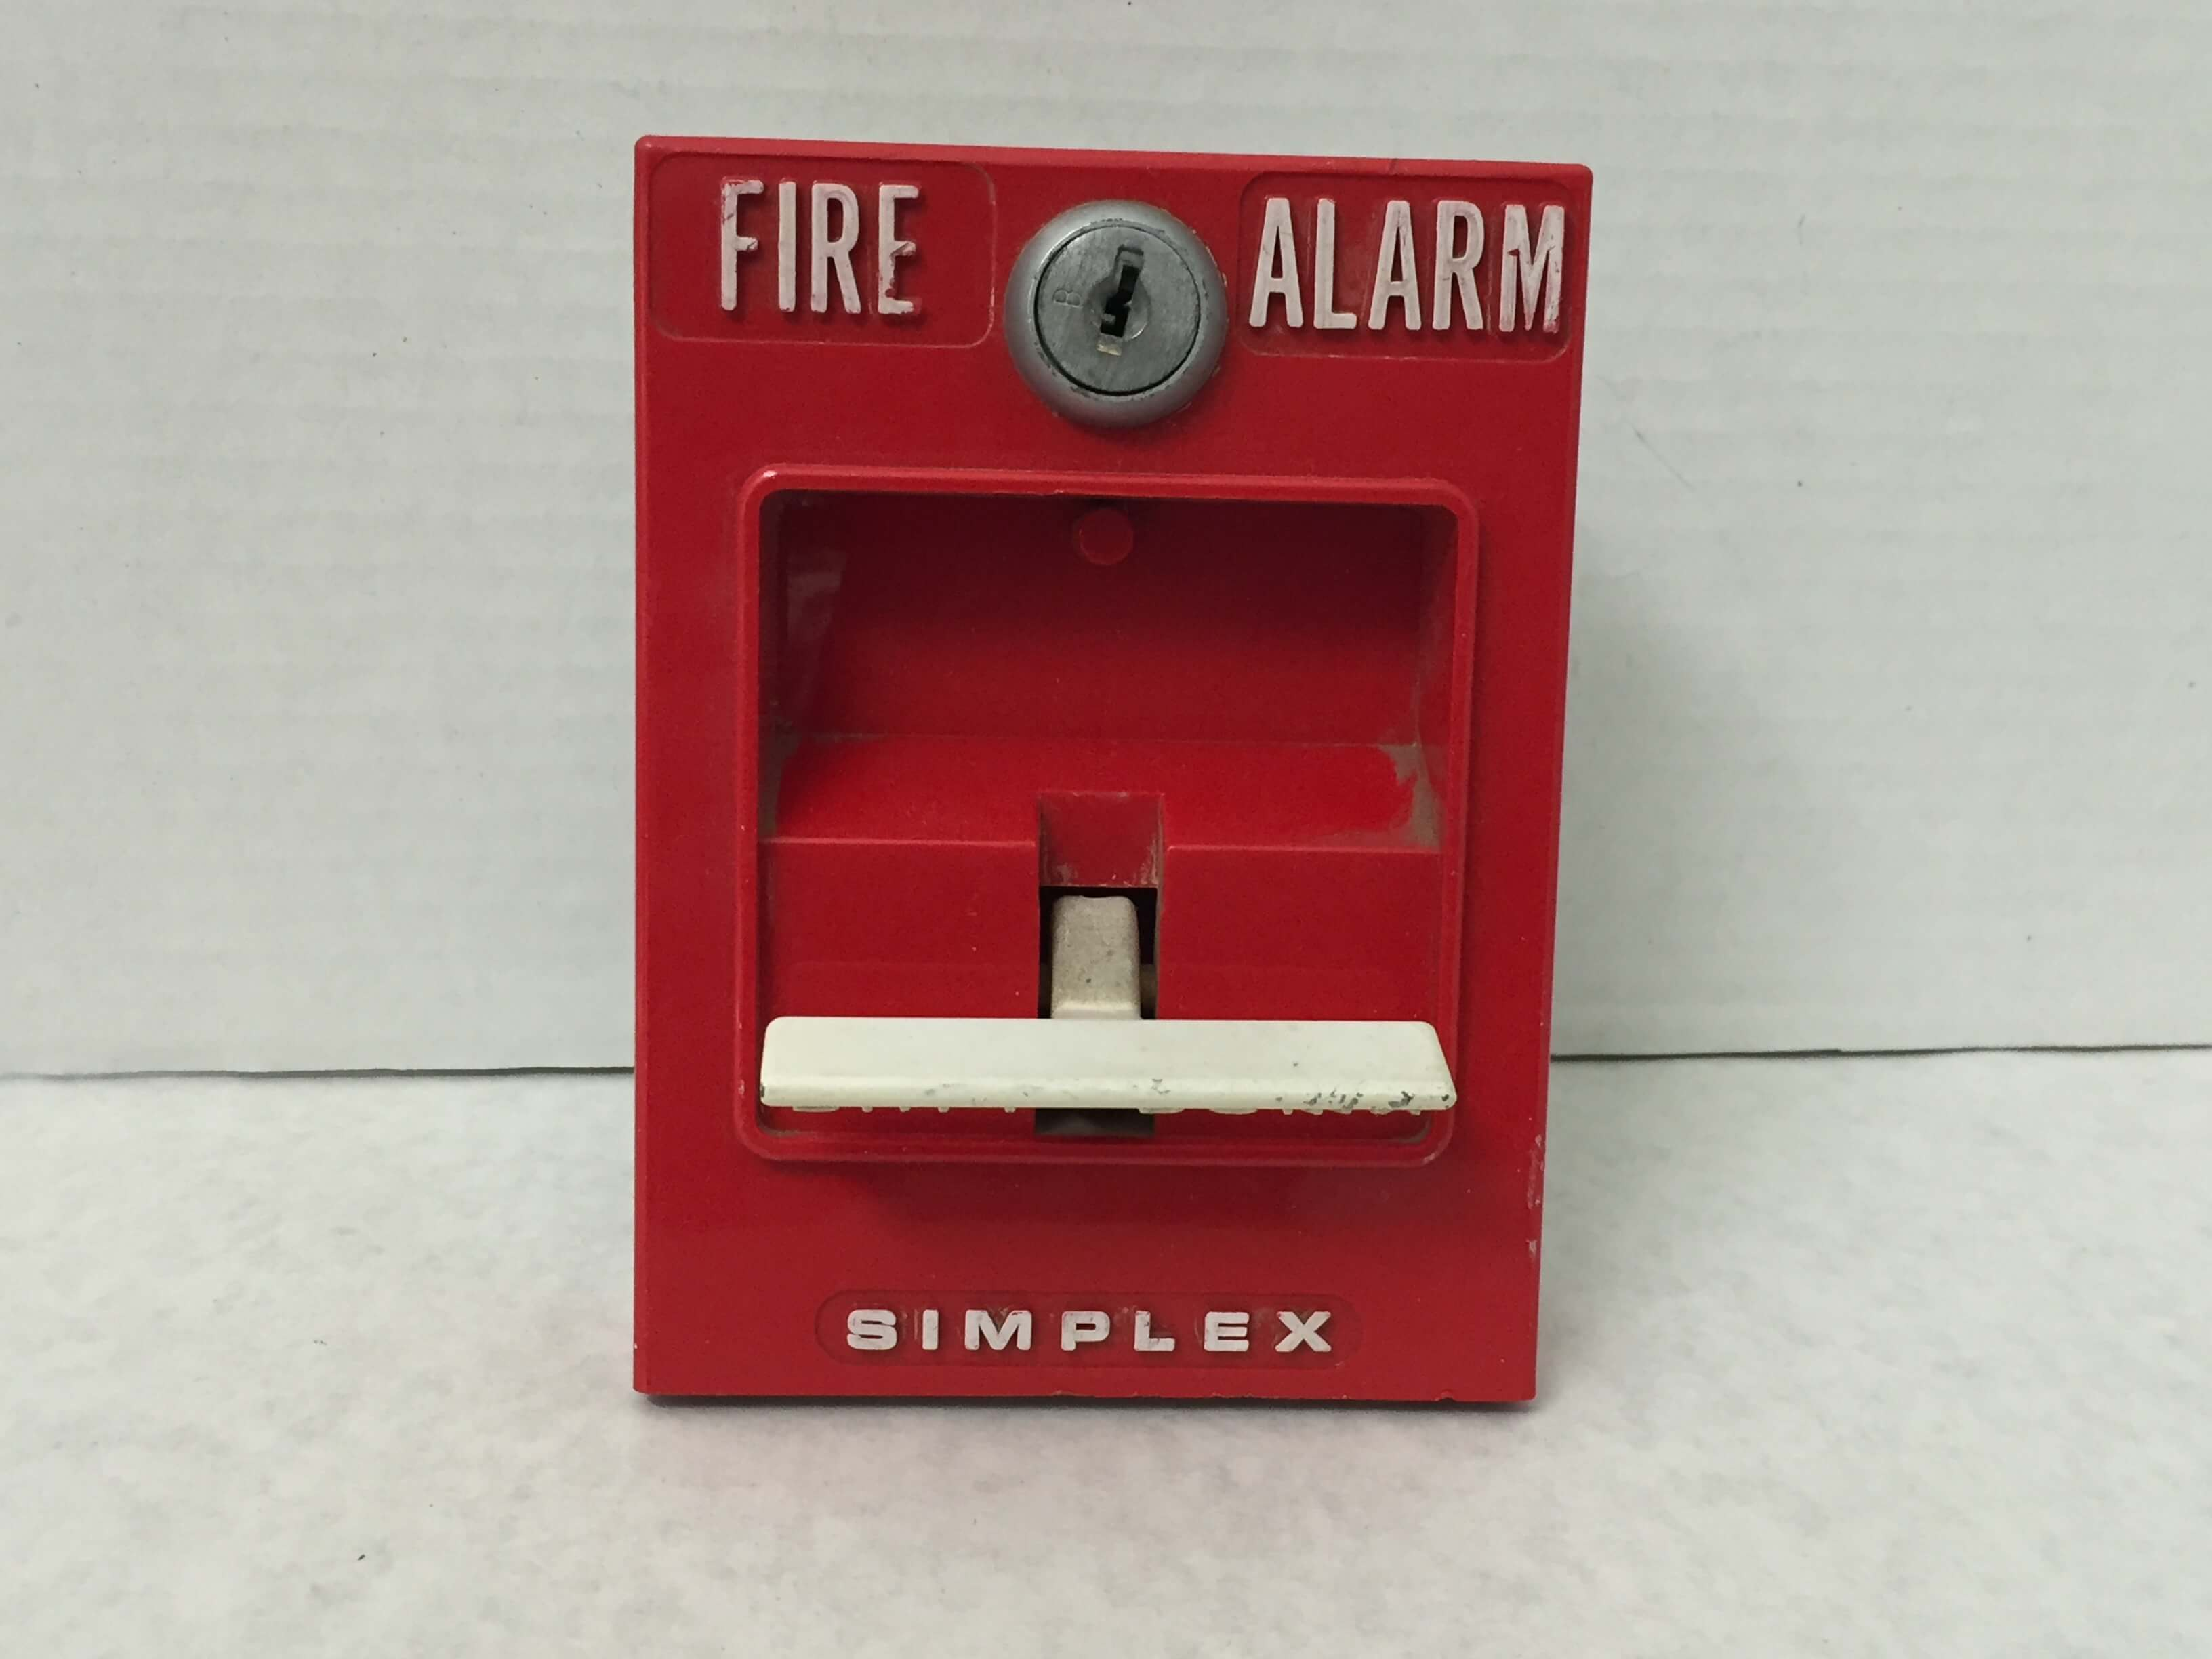 Simplex 4251 20 Firealarms Tv Jjinc24 U8ol0 S Fire